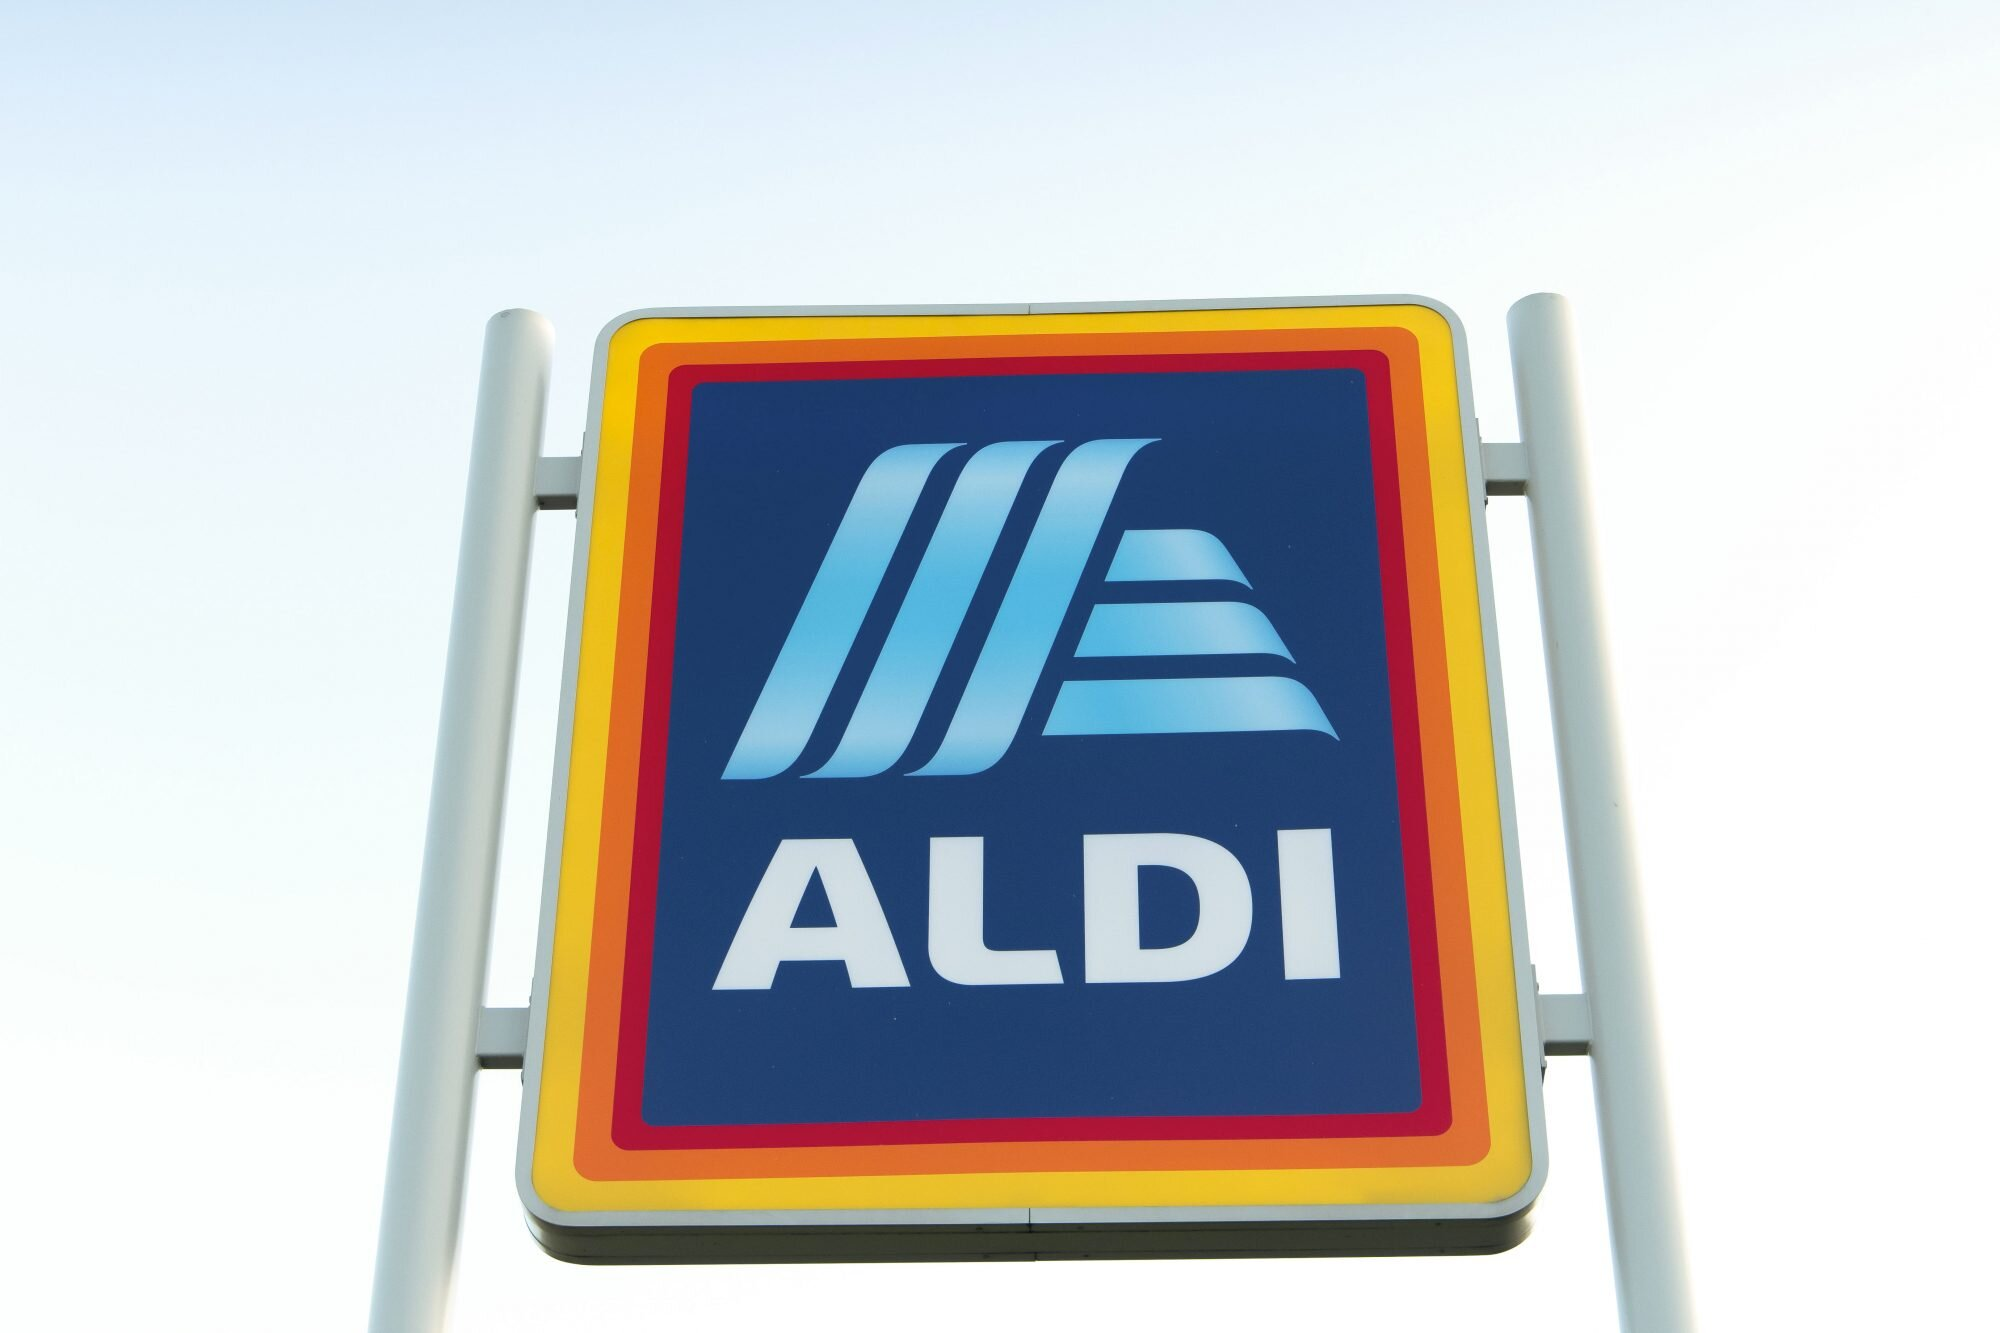 Why Is Aldi So Cheap?